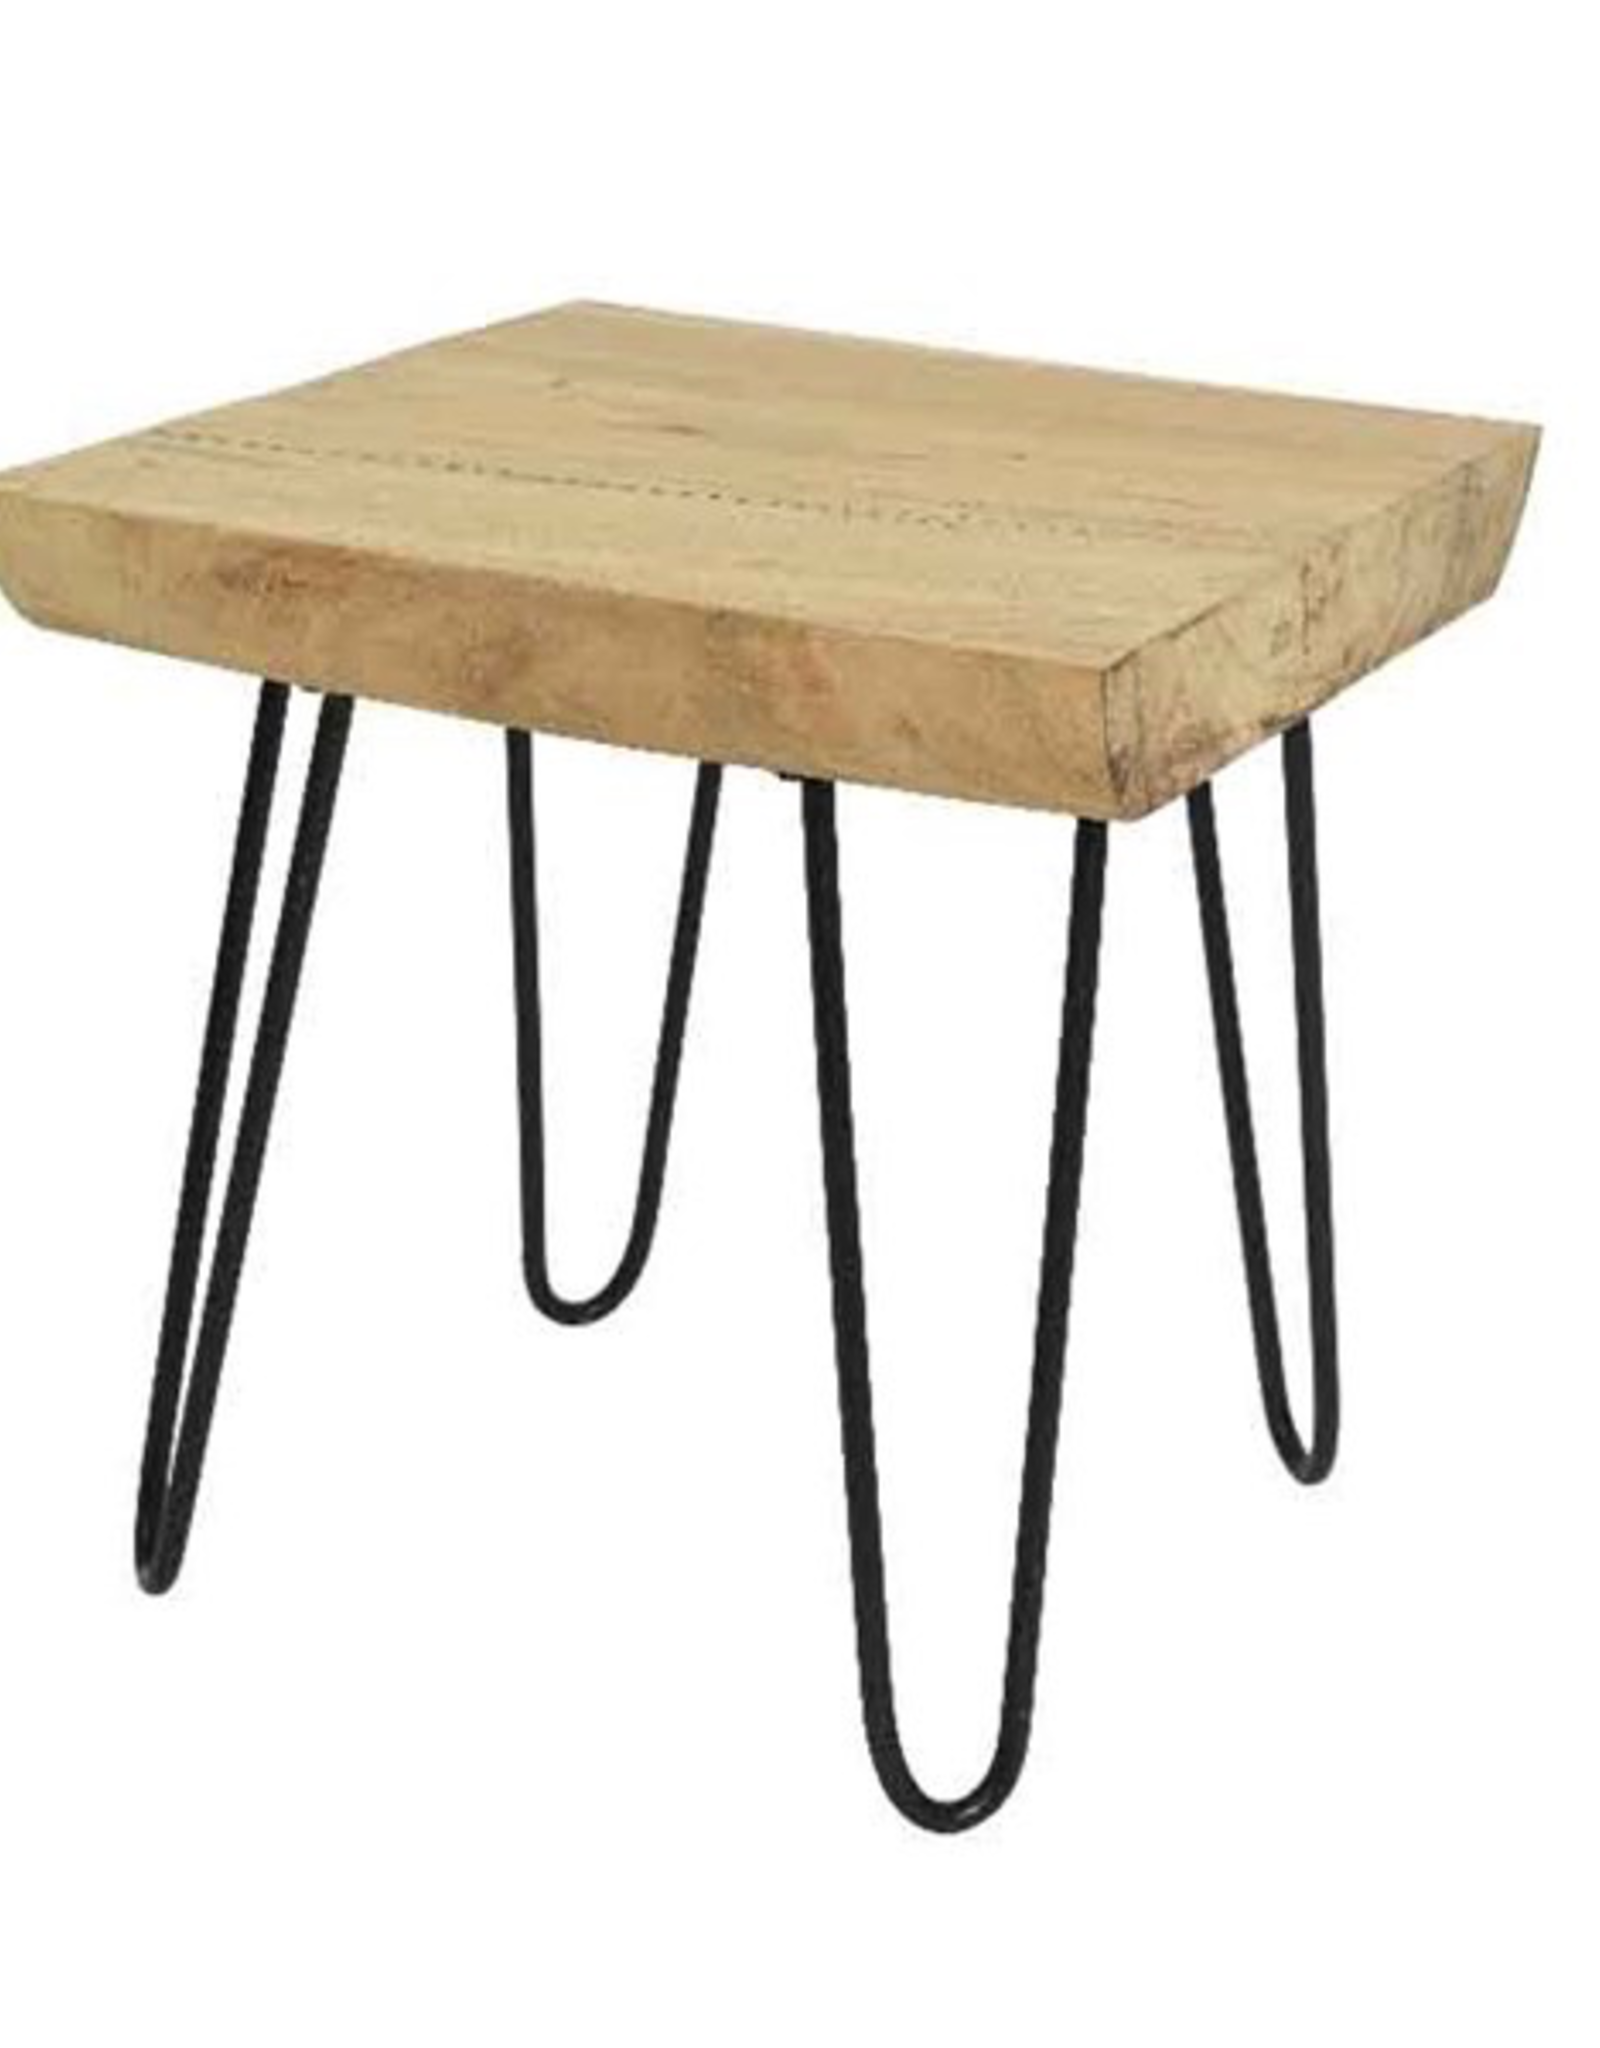 Sugar Wood Side Table with Metal Base